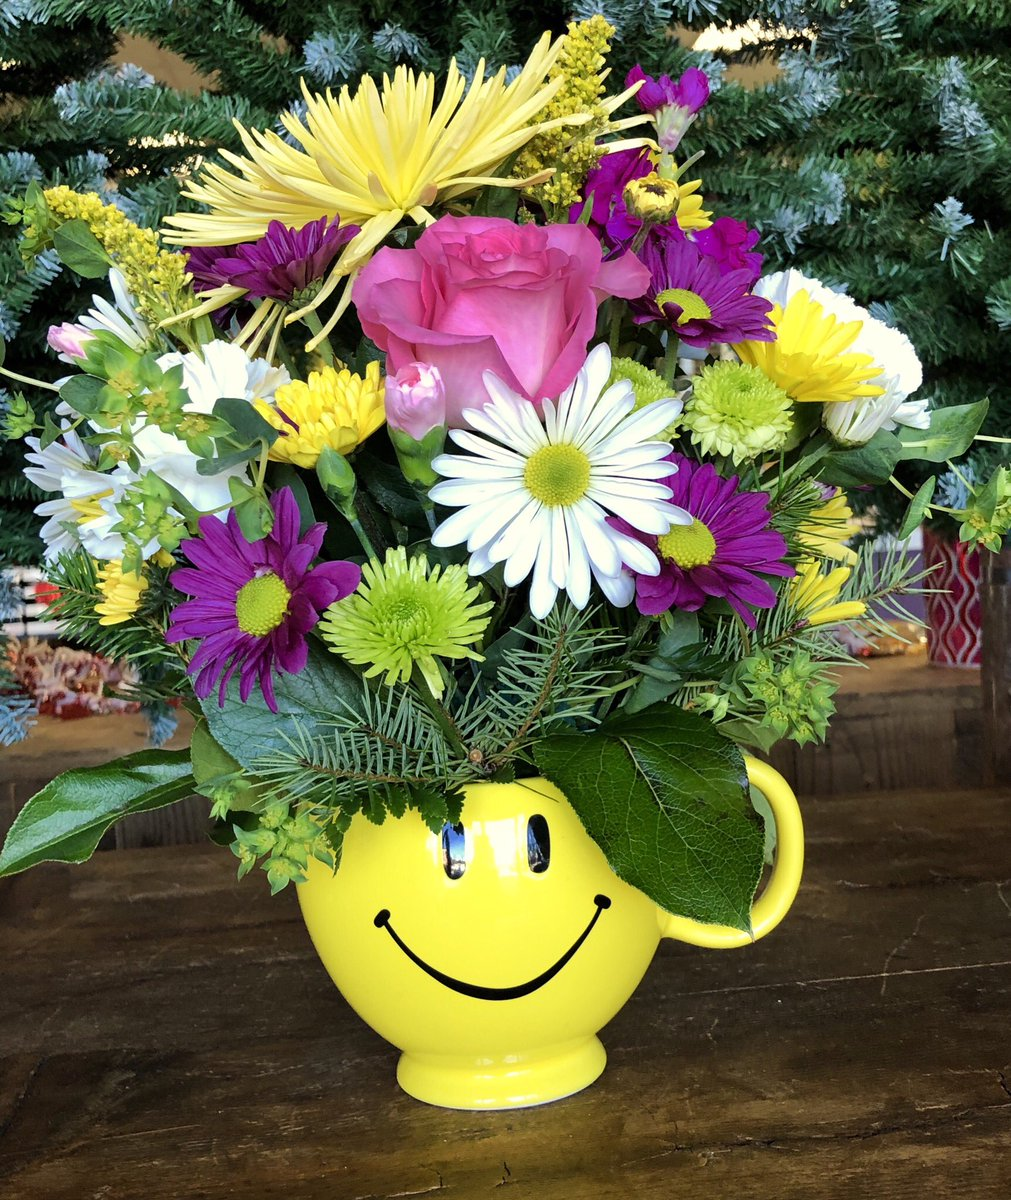 Parker blooms parkerbloomsco twitter nationalsmileday smile smileyface spidermums roses daisies flowers picitter5goetimg9w izmirmasajfo